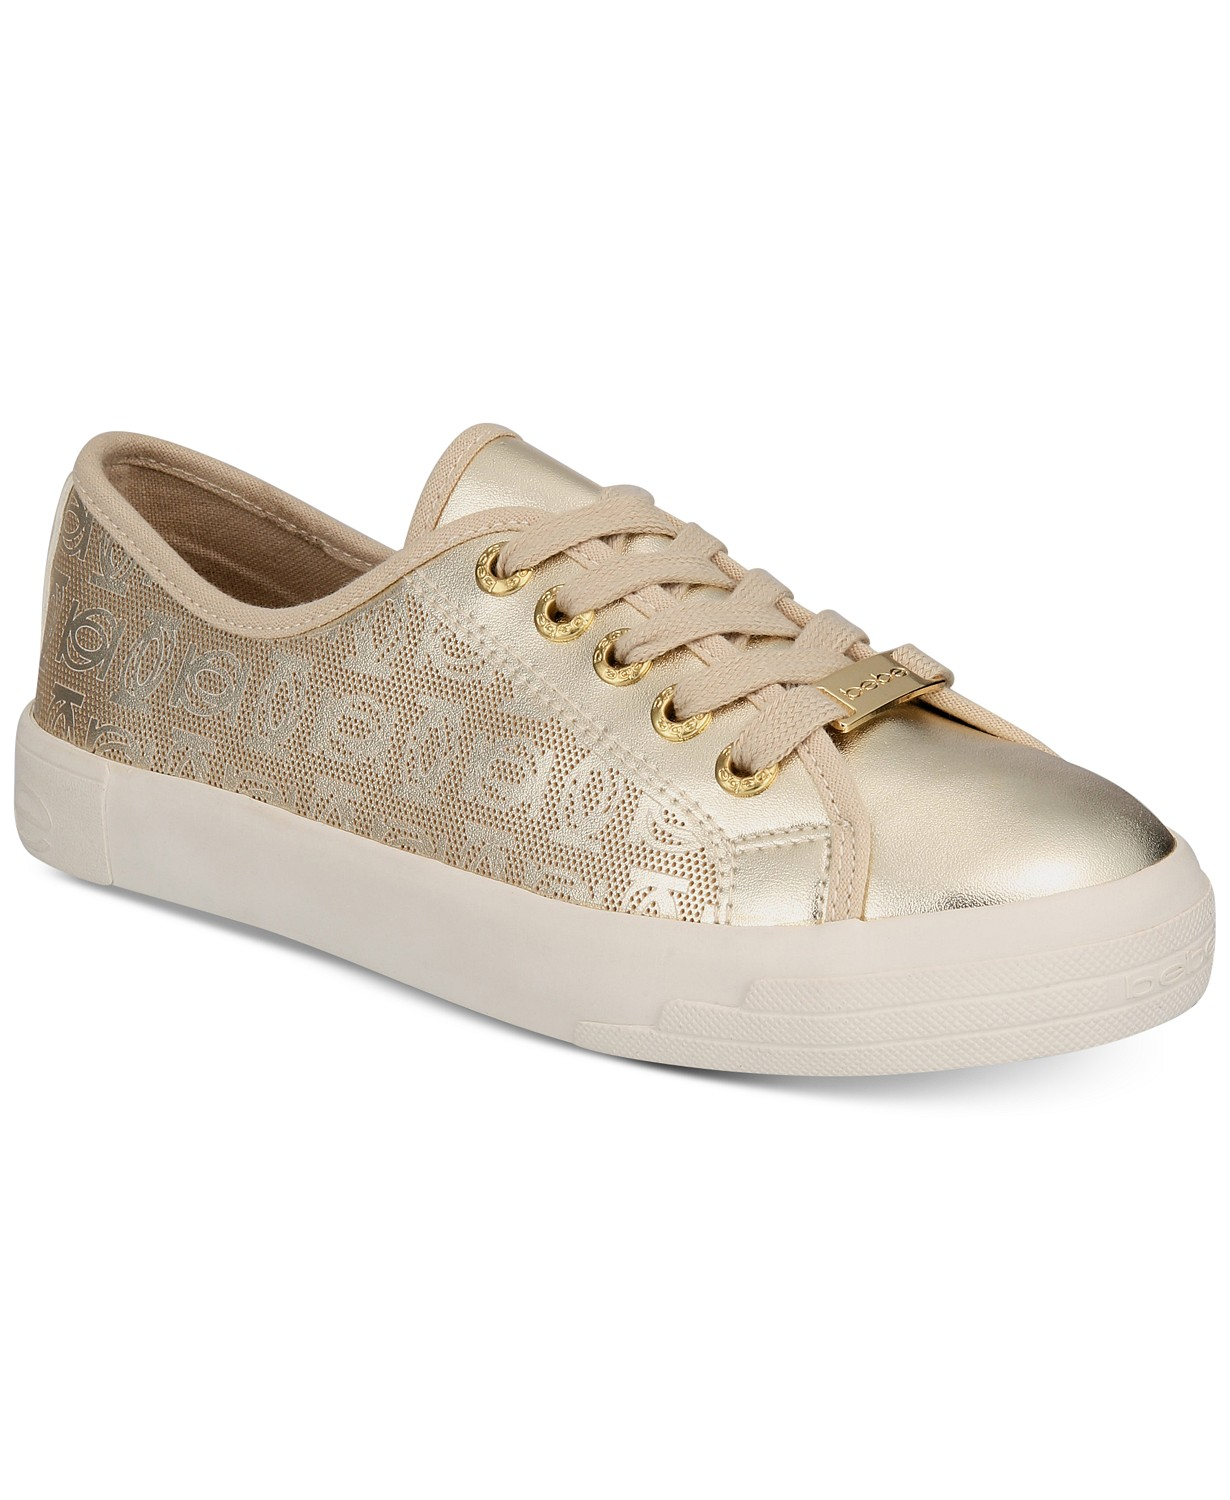 Bebe Sport Dane Lace-Up Sneakers